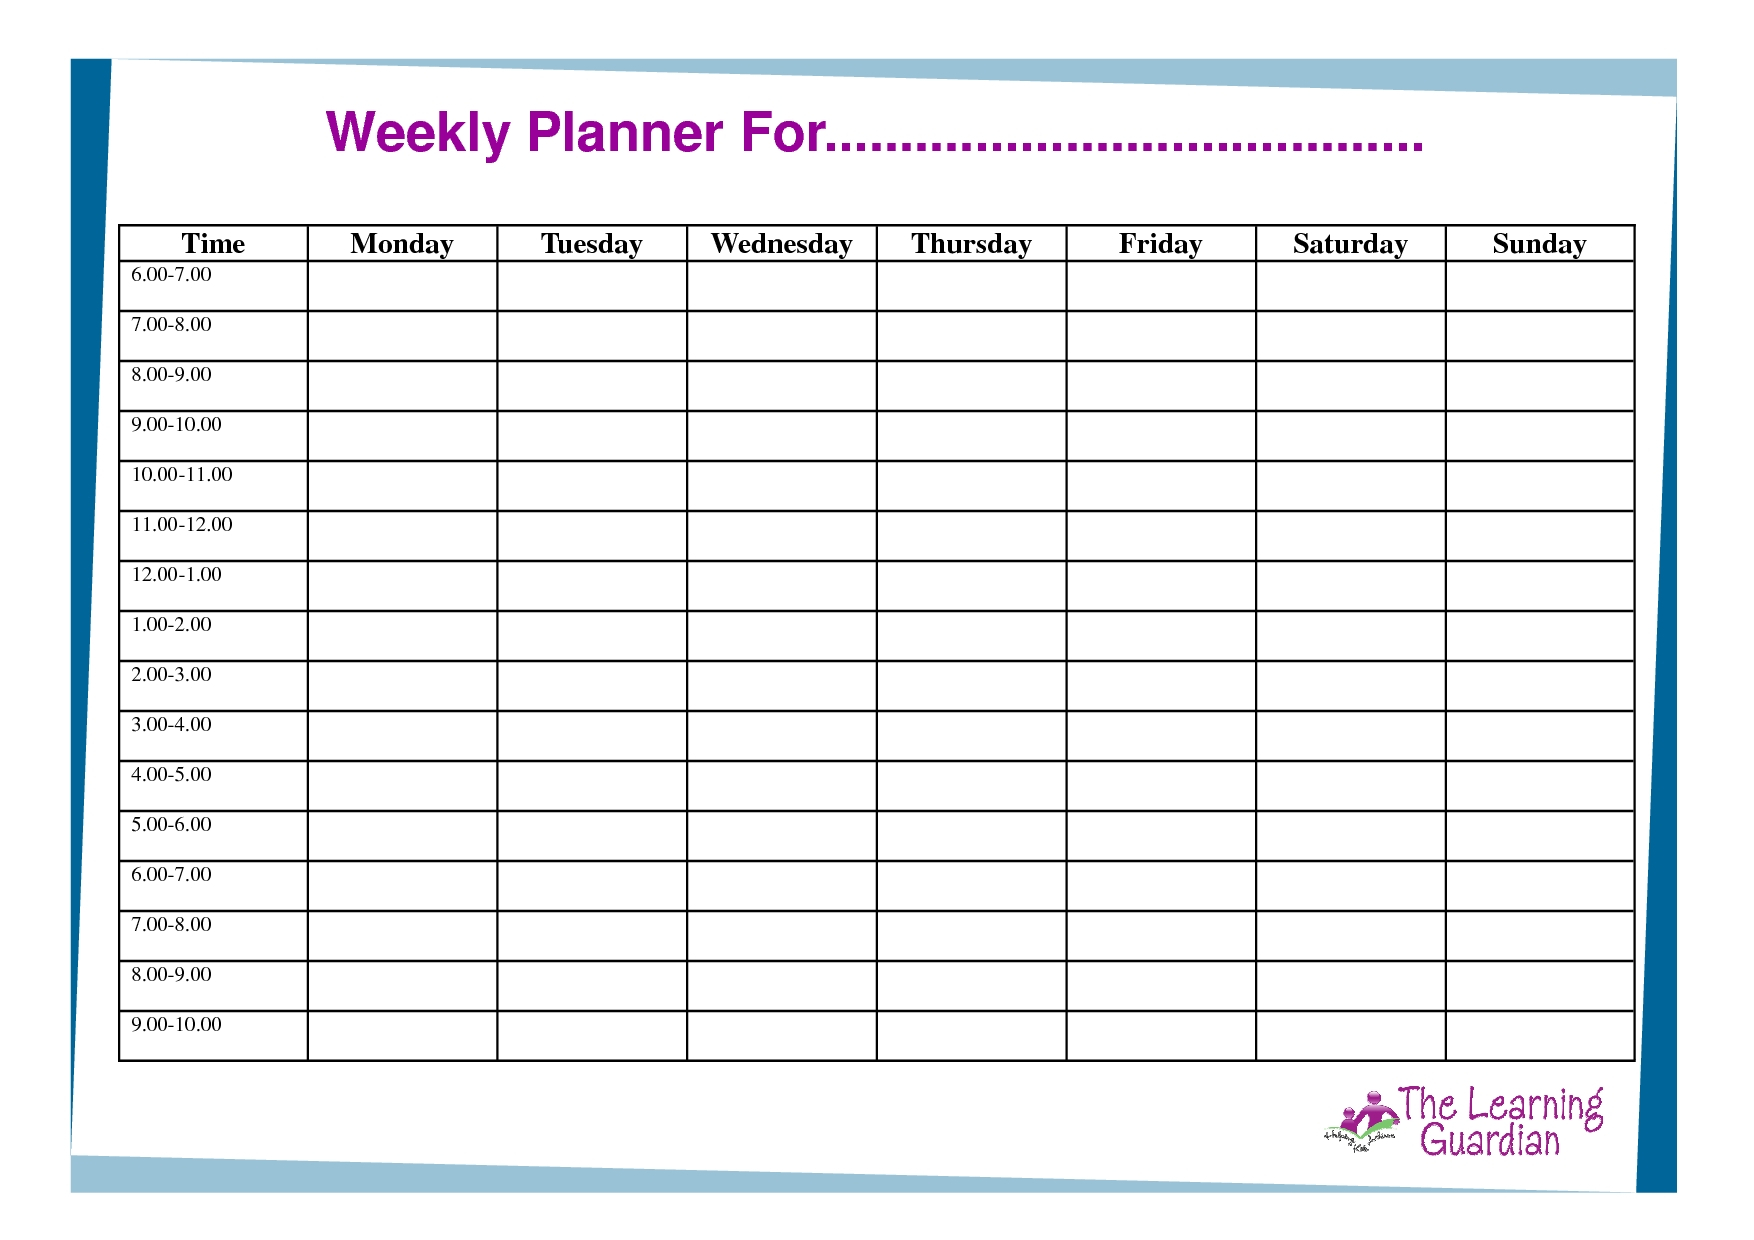 July 2018 – Page 2 – Template Calendar Design Weekly Planner With Time Slots Pdf